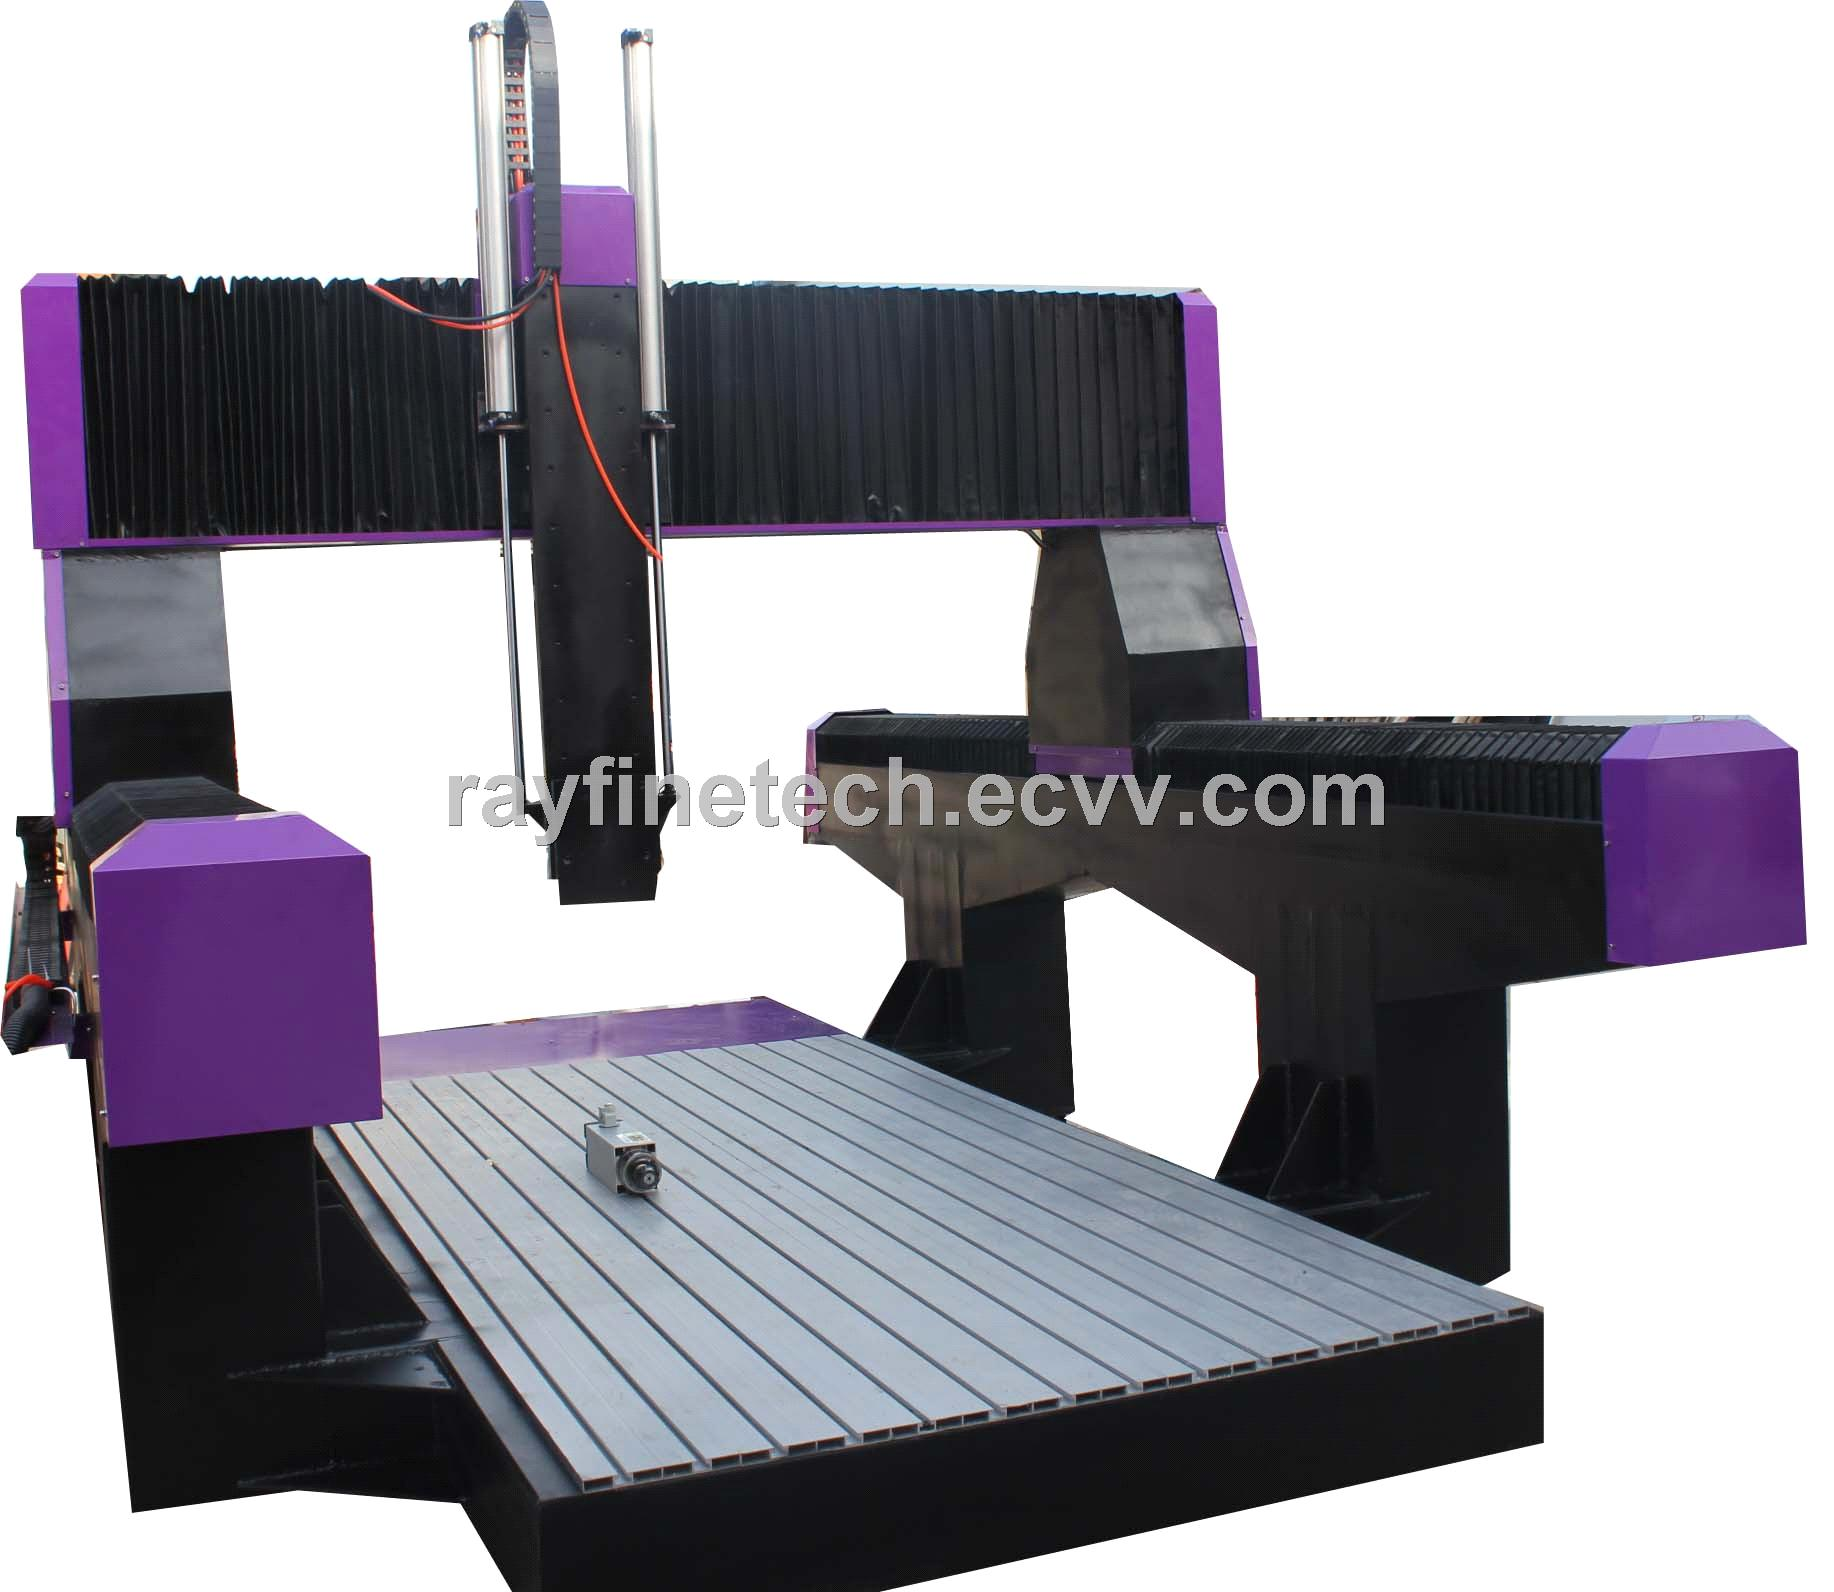 Foam Mold CNC Cutting Machine RF-1325-F